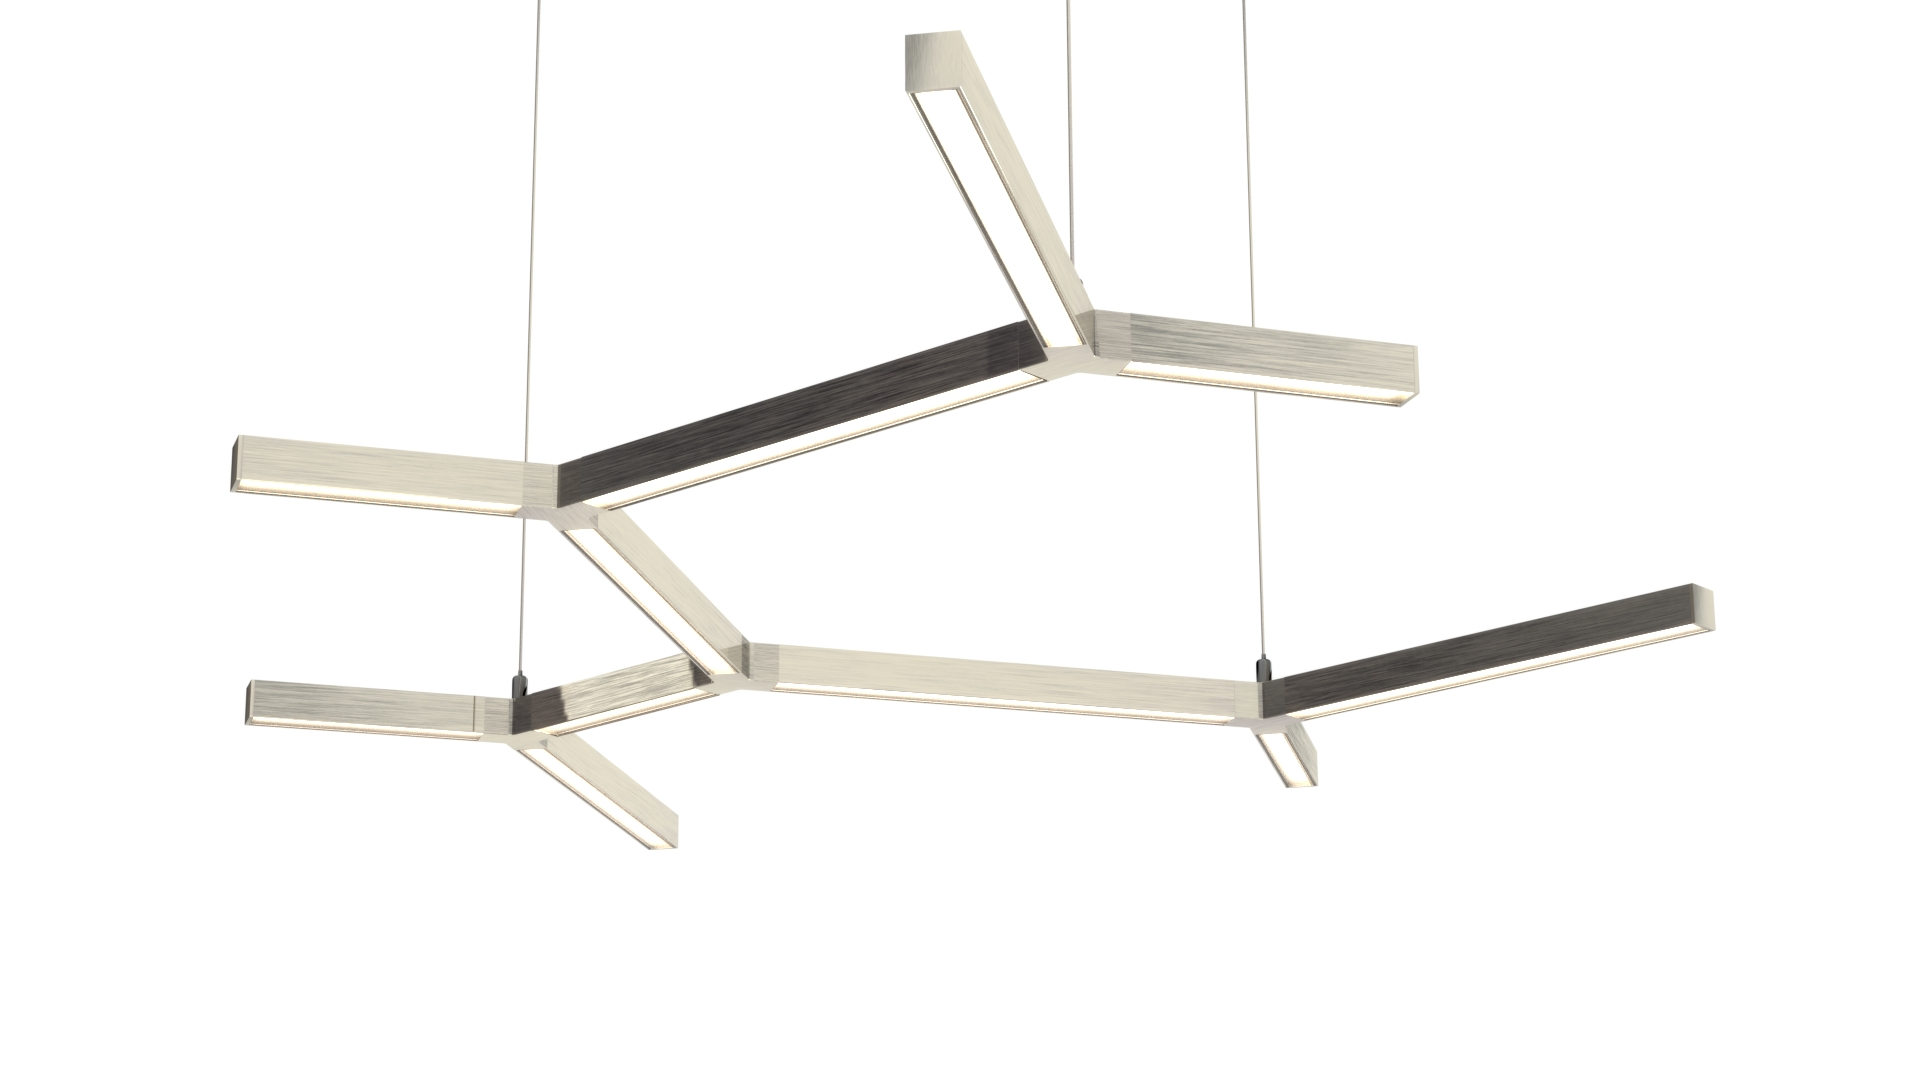 Created new  joints  to allow customizable fixtures using Modulightor's extrusion system.